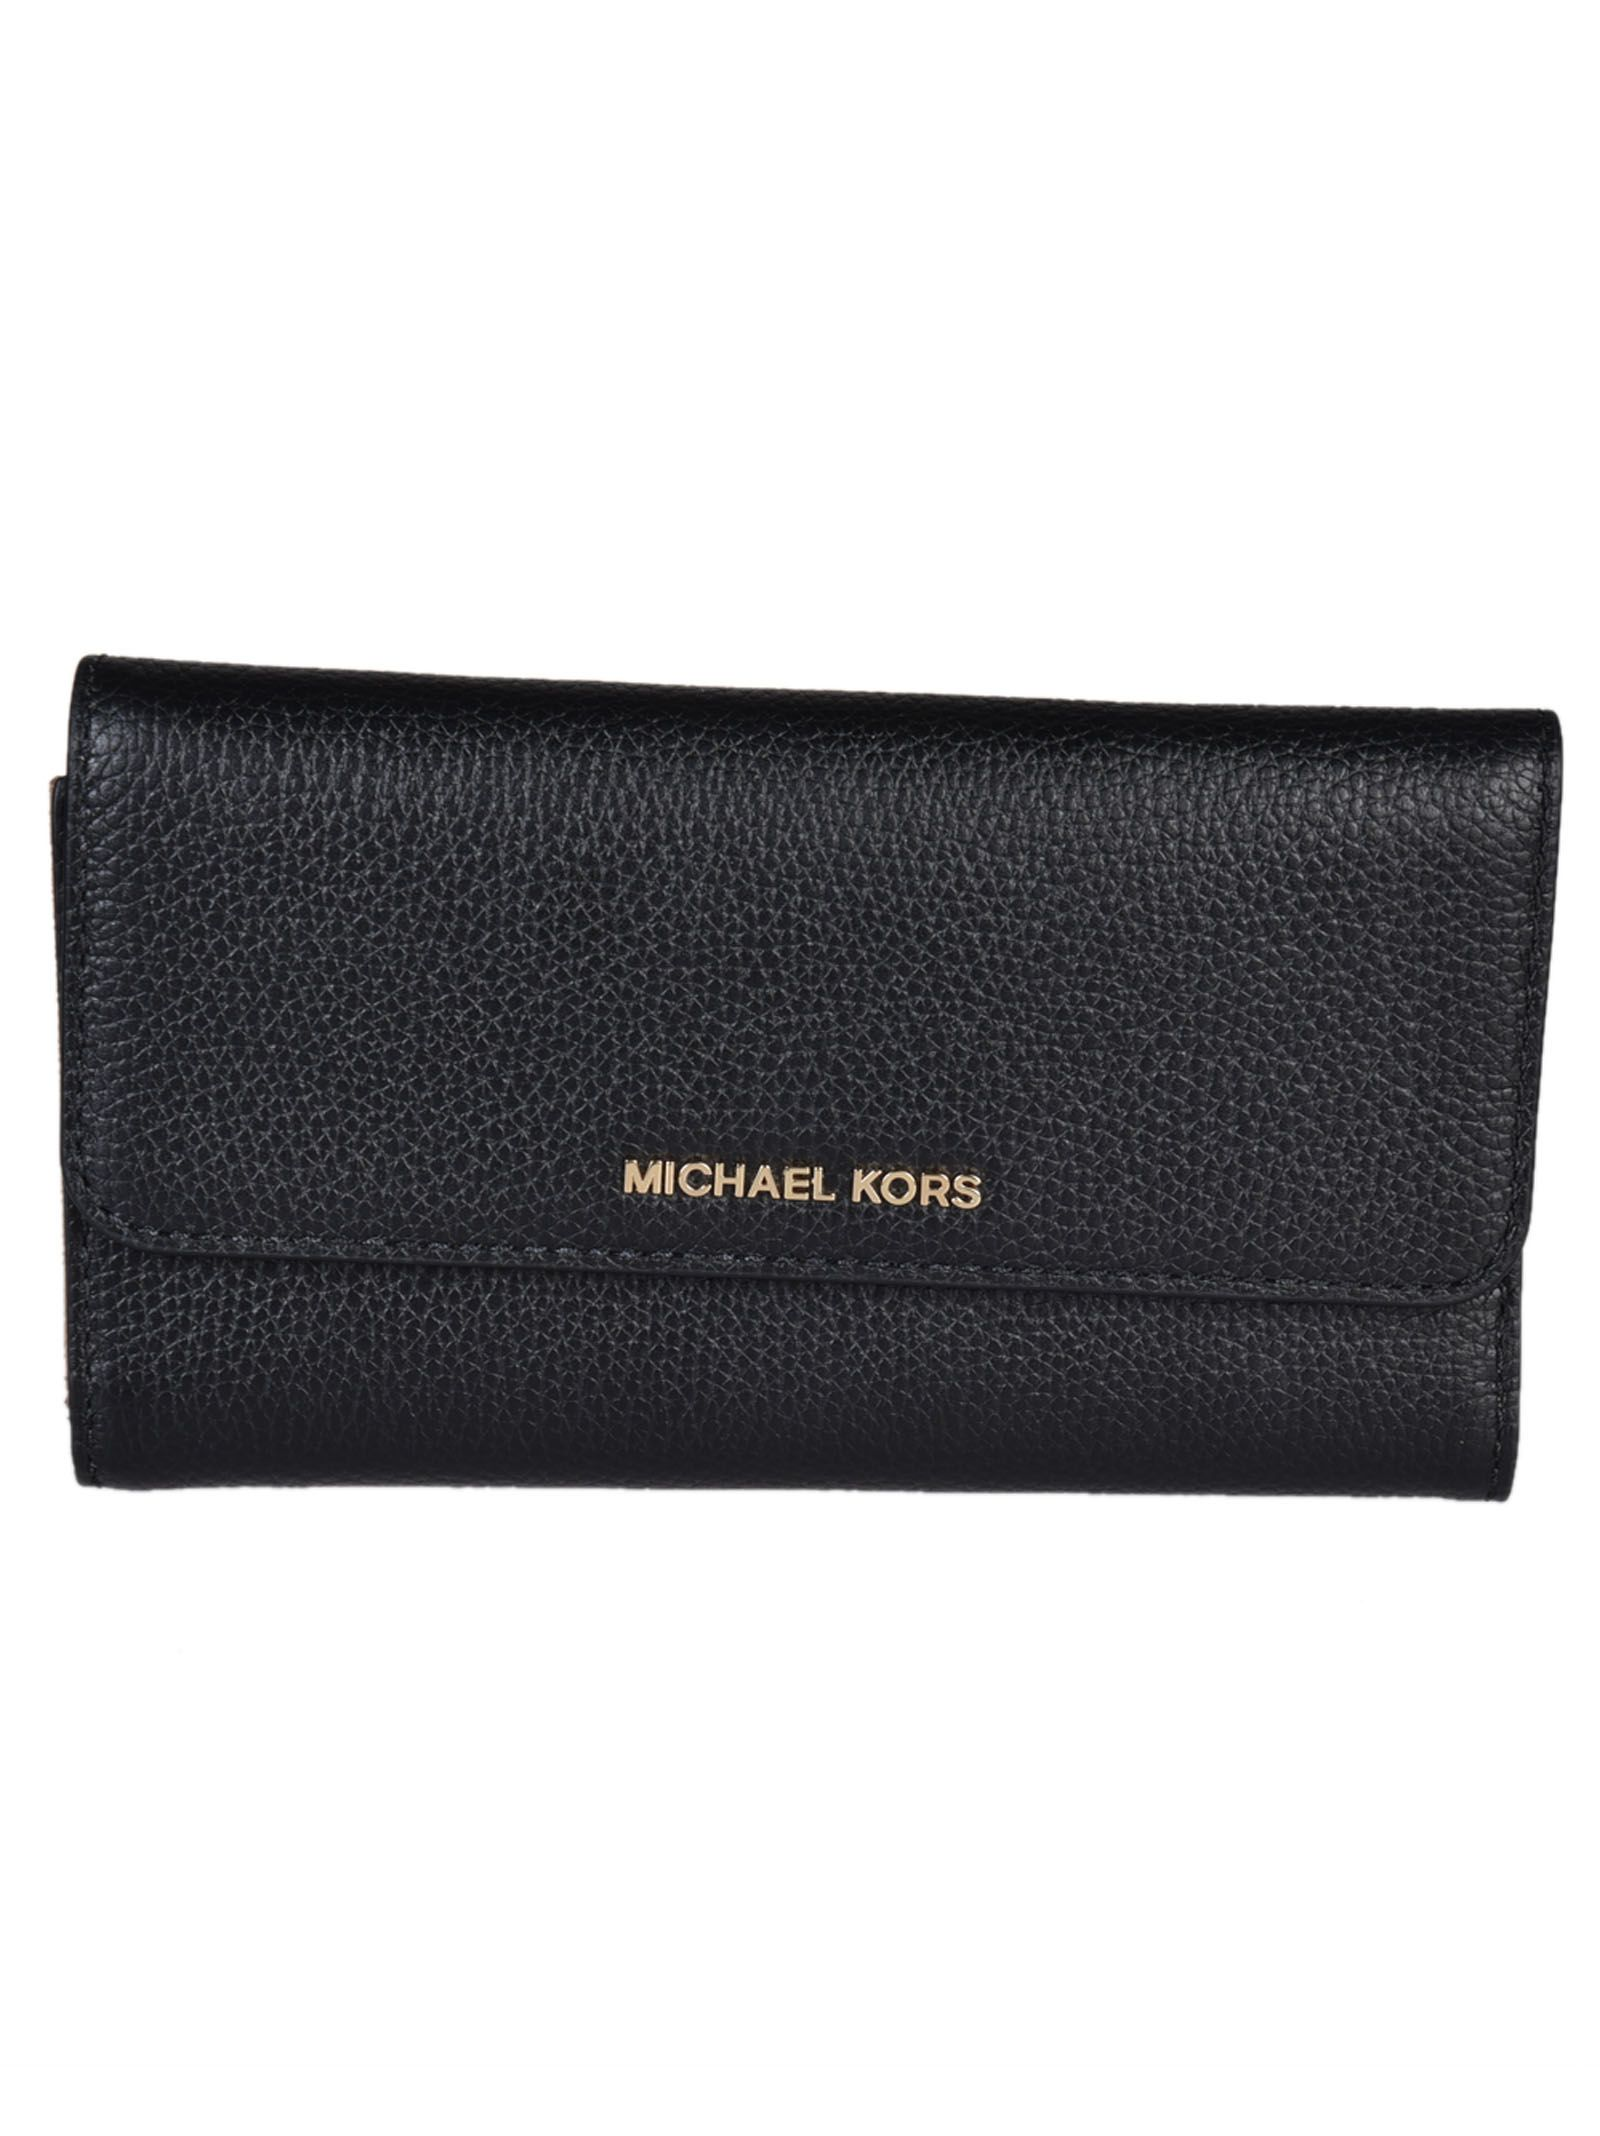 6cdf9fe0cbaf Michael Kors Tri Fold Women's Wallet | Stanford Center for ...